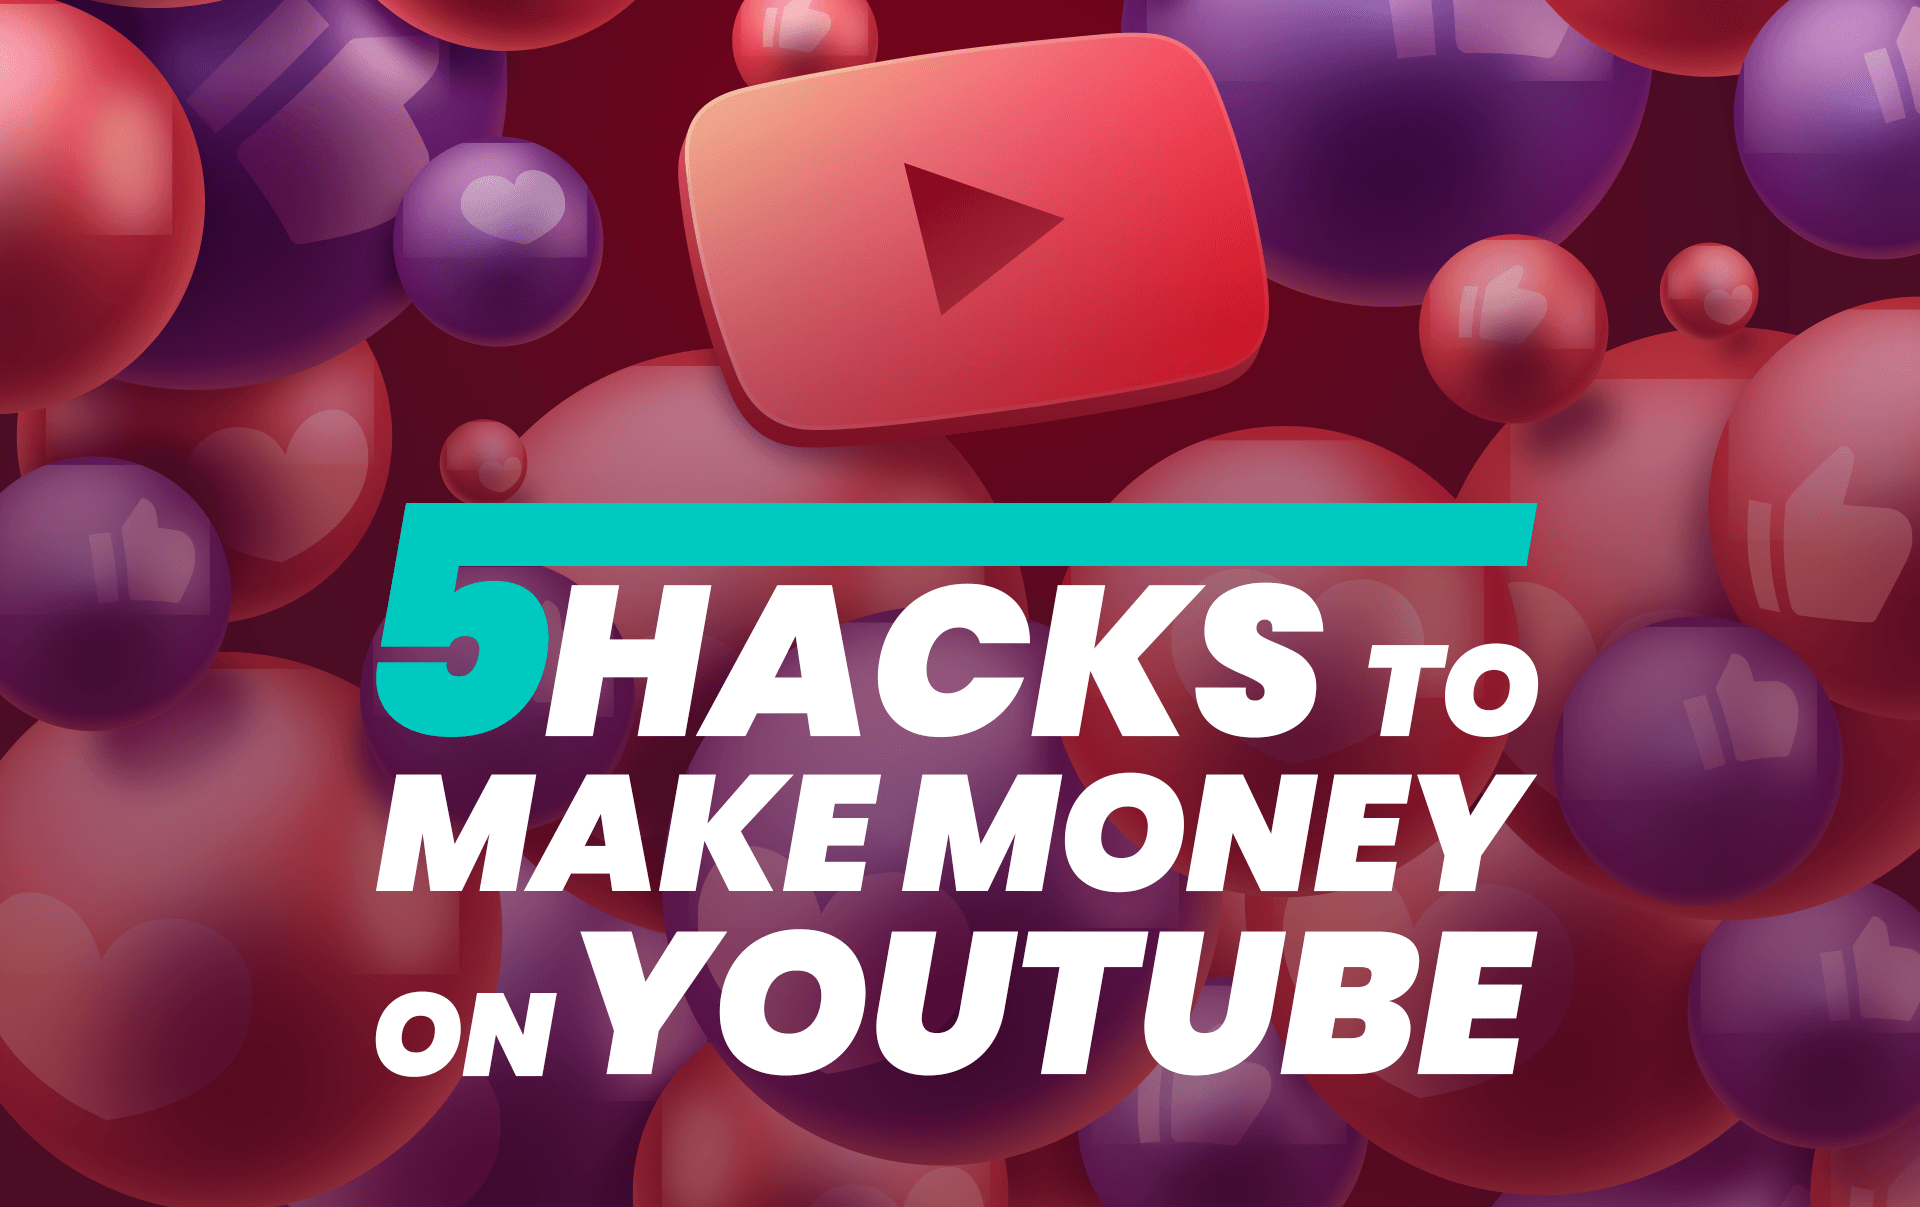 How to Make Money on YouTube [5 Hacks]